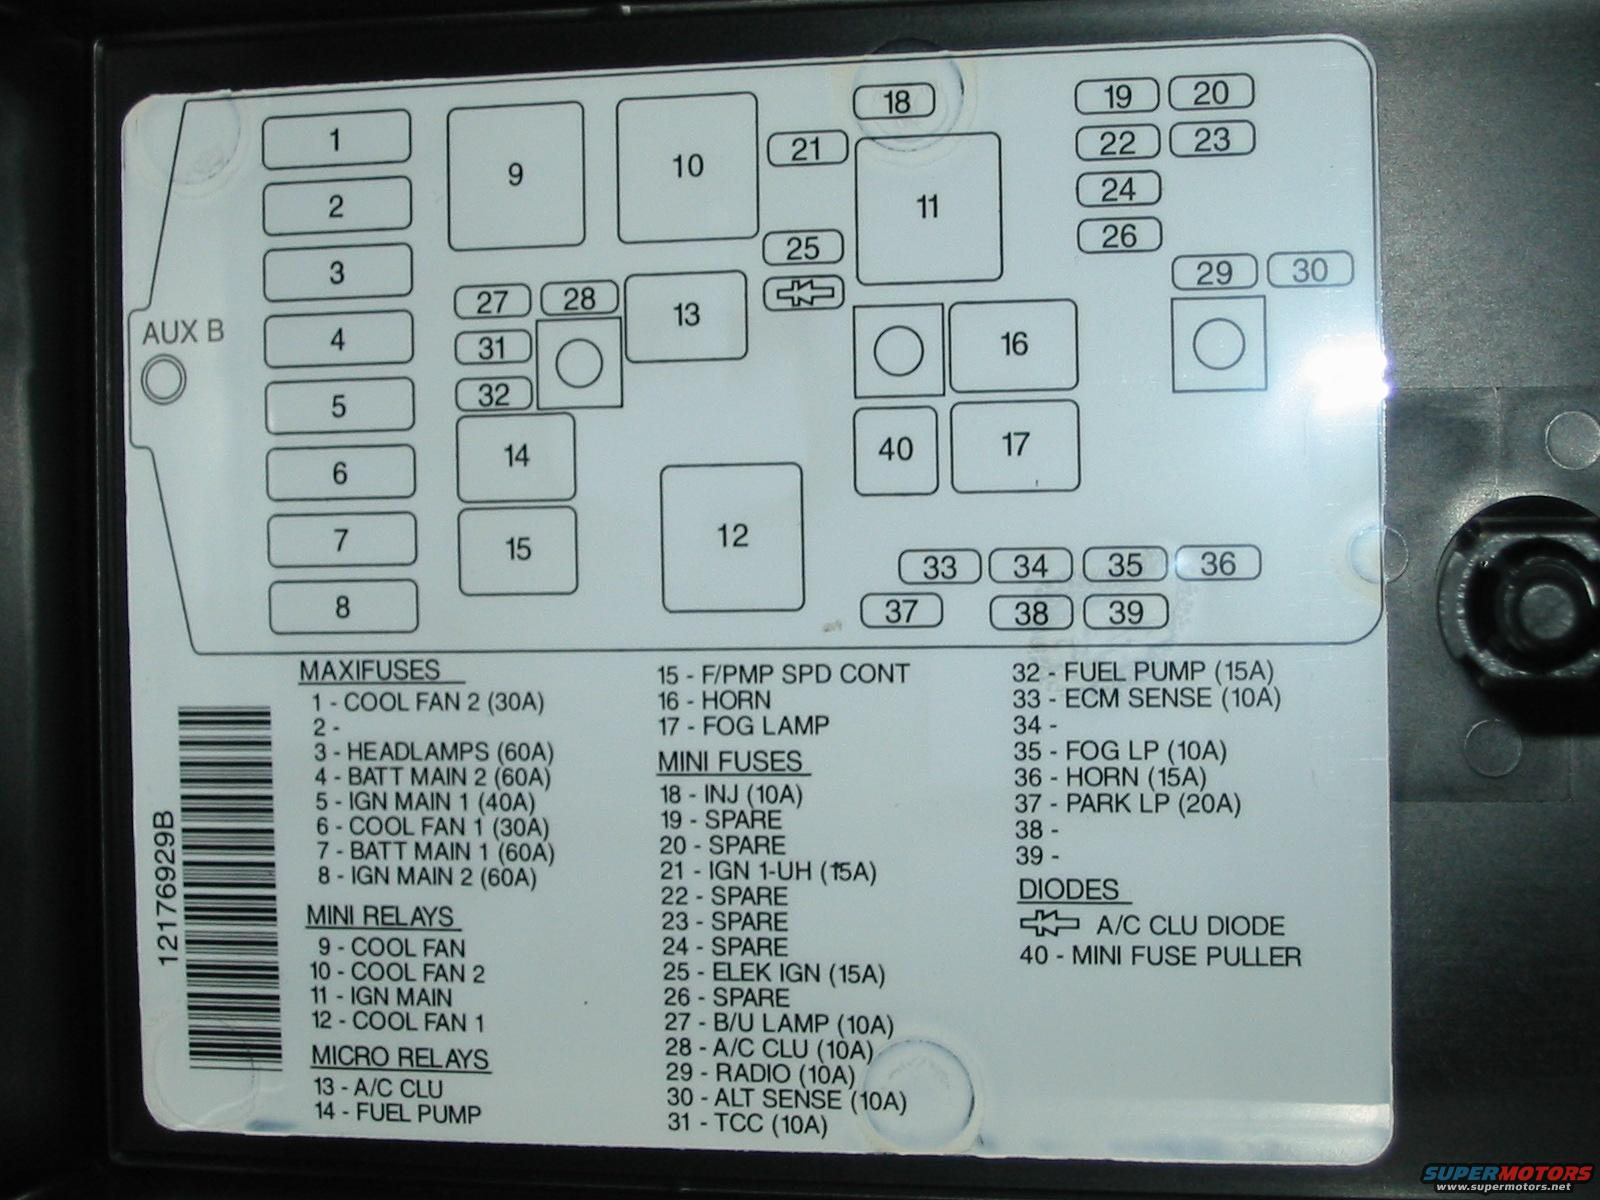 hight resolution of blower motor 98 grand prix blower motor resistorblower fuse and relay diagram 2005 rav4 fuse and